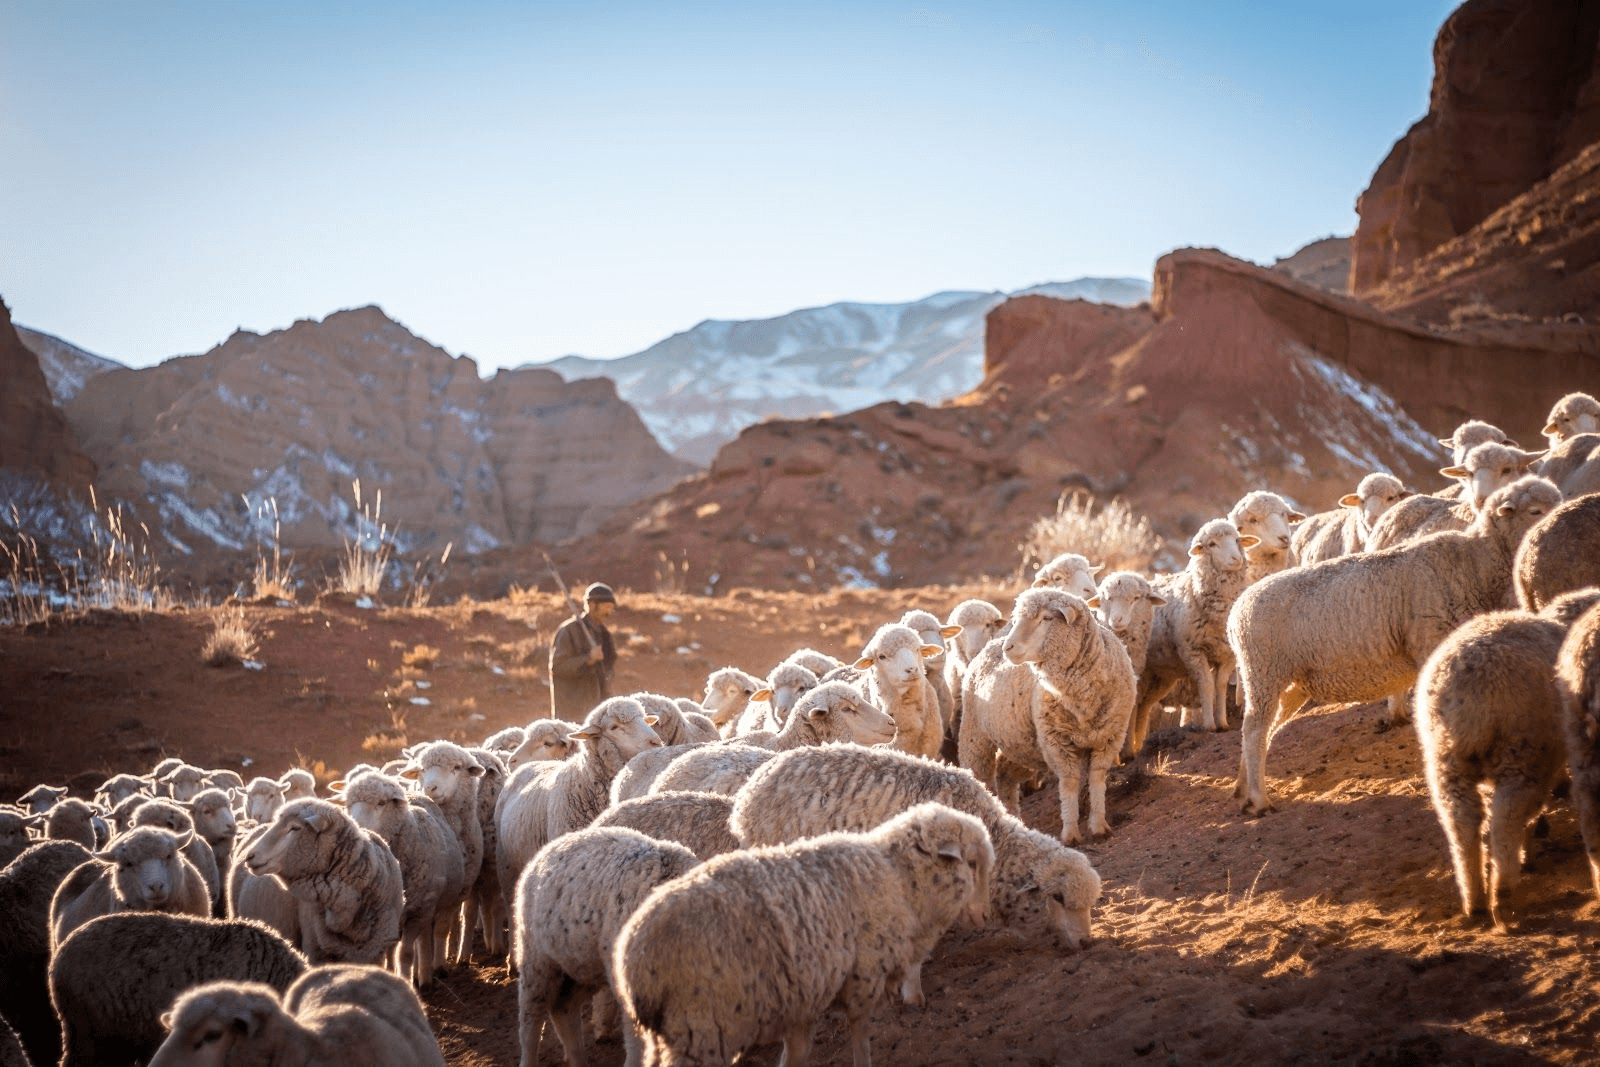 Sheep with shepherd in the mountains